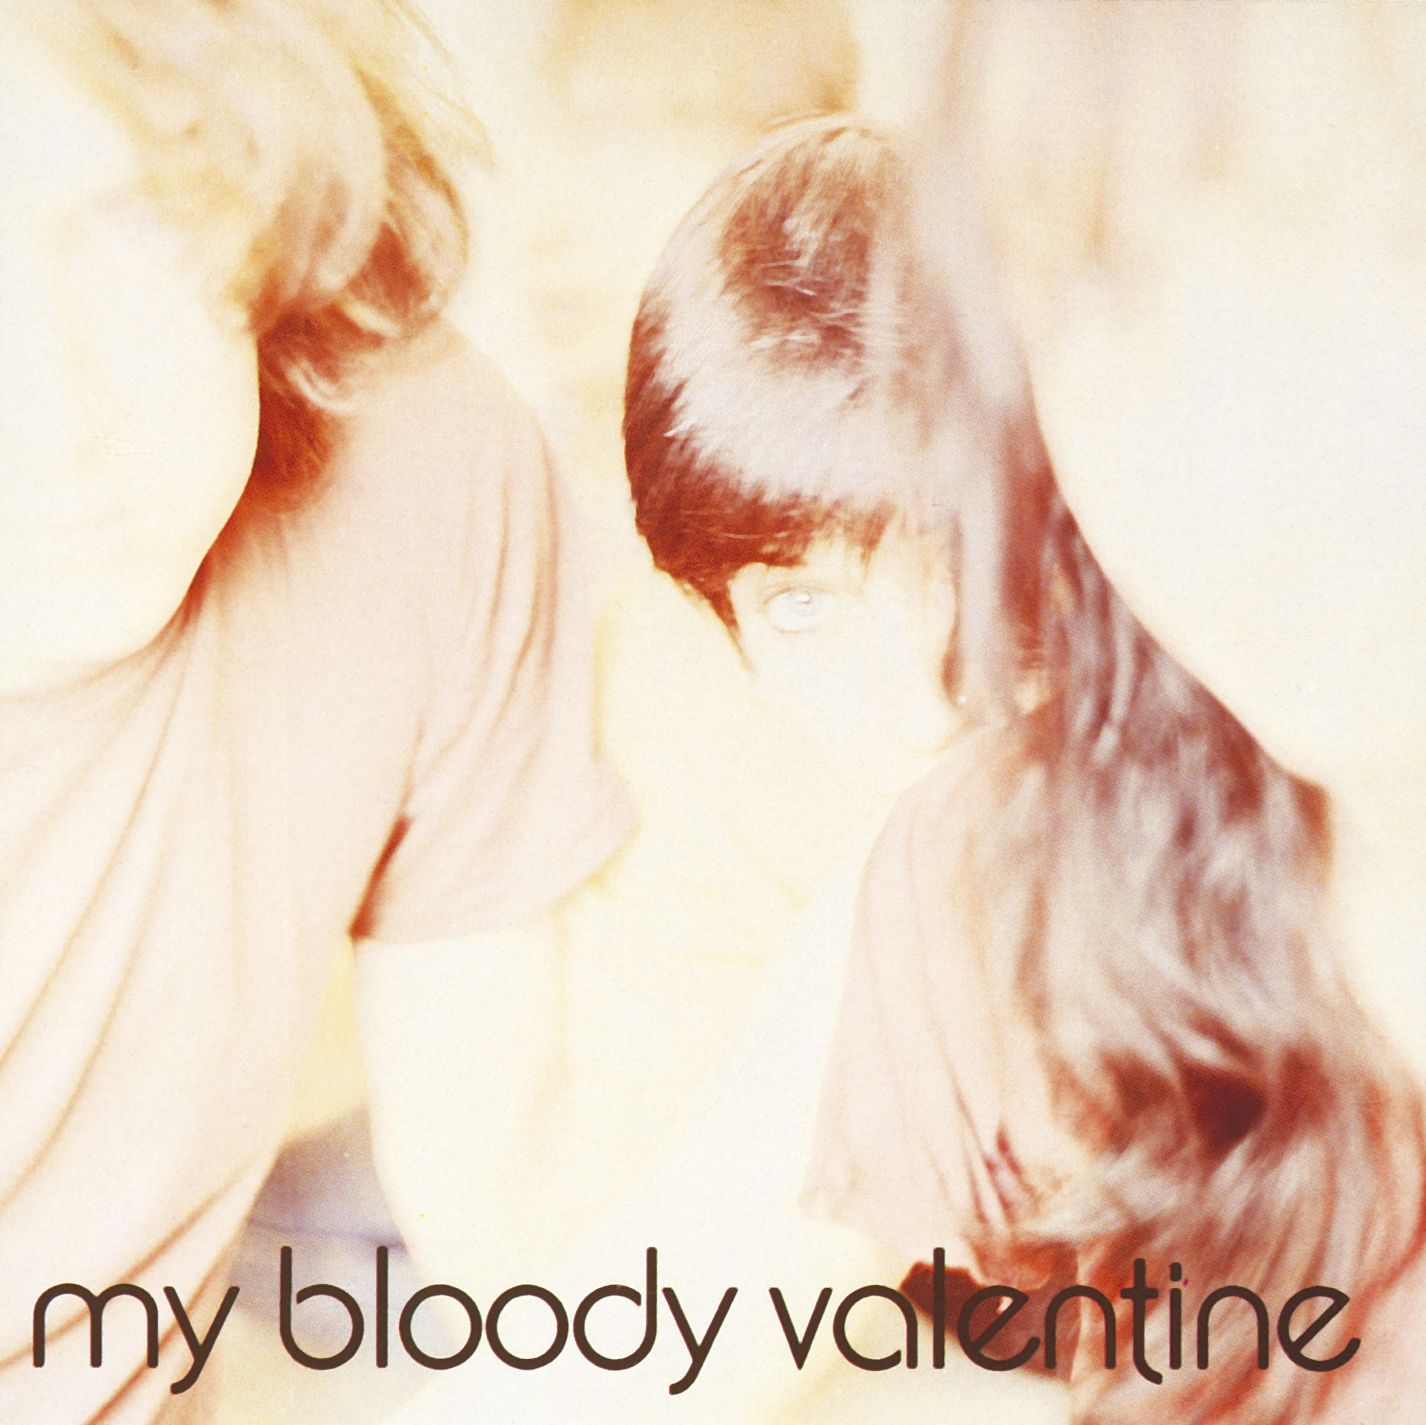 My Bloody Valentine's 'Loveless,' 'Isn't Anything' reissues finally due out in January